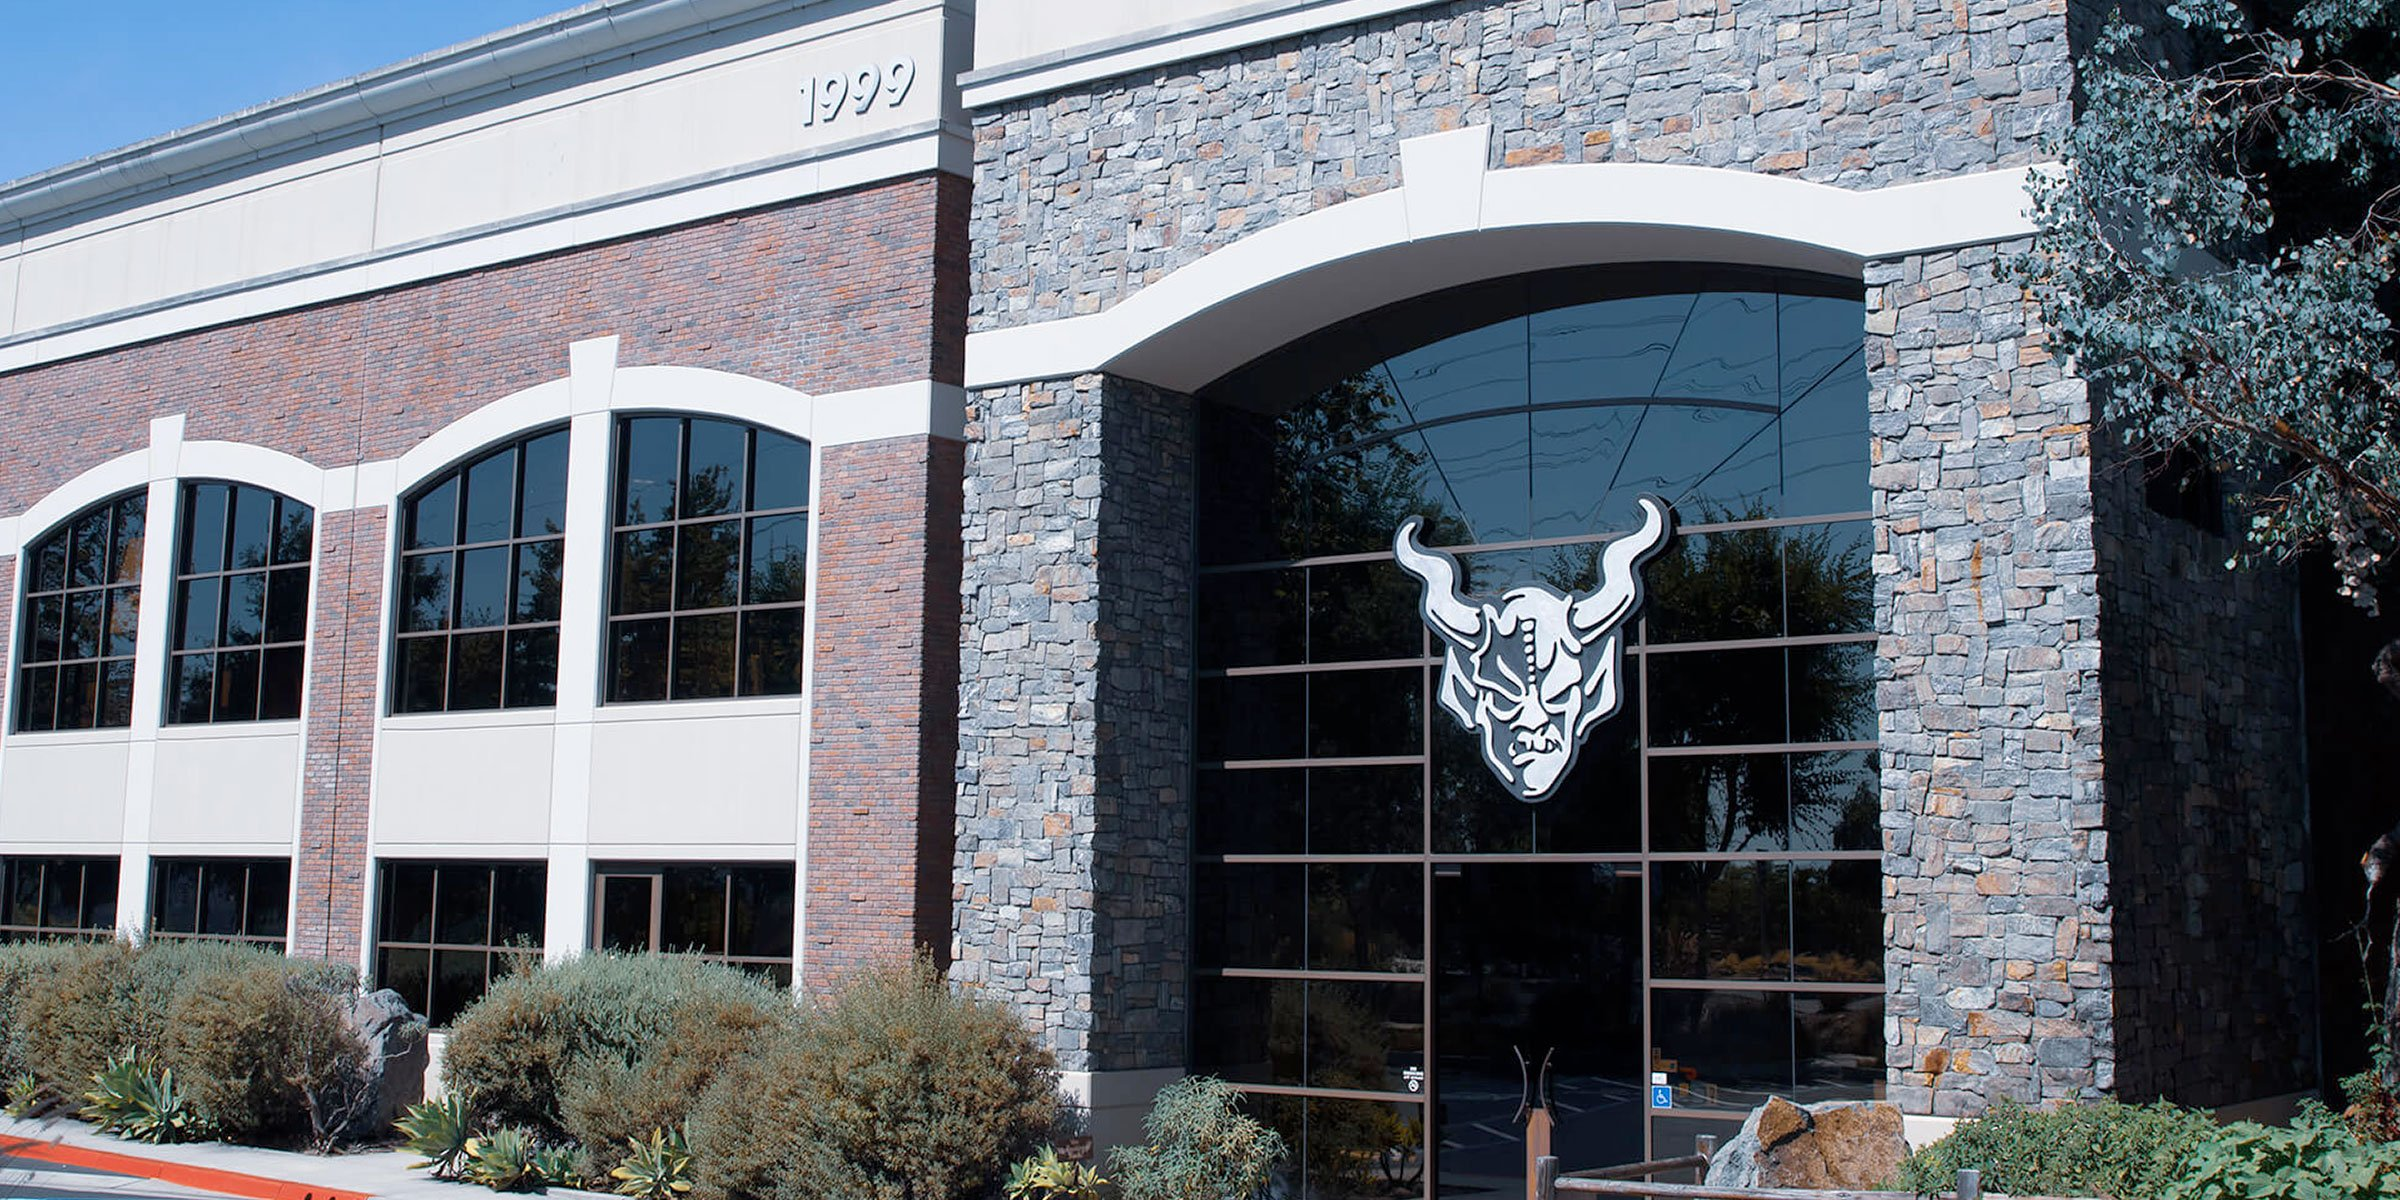 Outside the entrance to the Stone Brewing location in Escondido, California